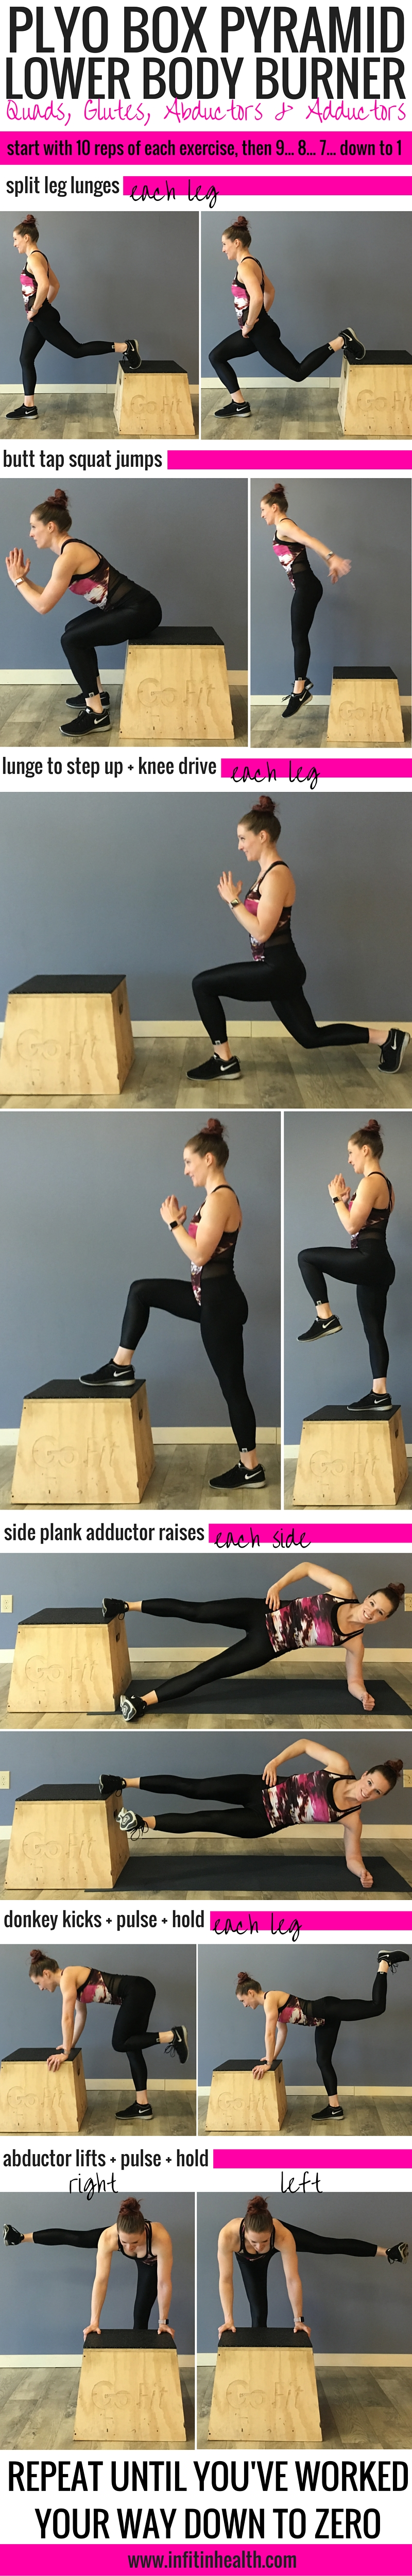 Plyo Box Pyramid Lower Body Burner